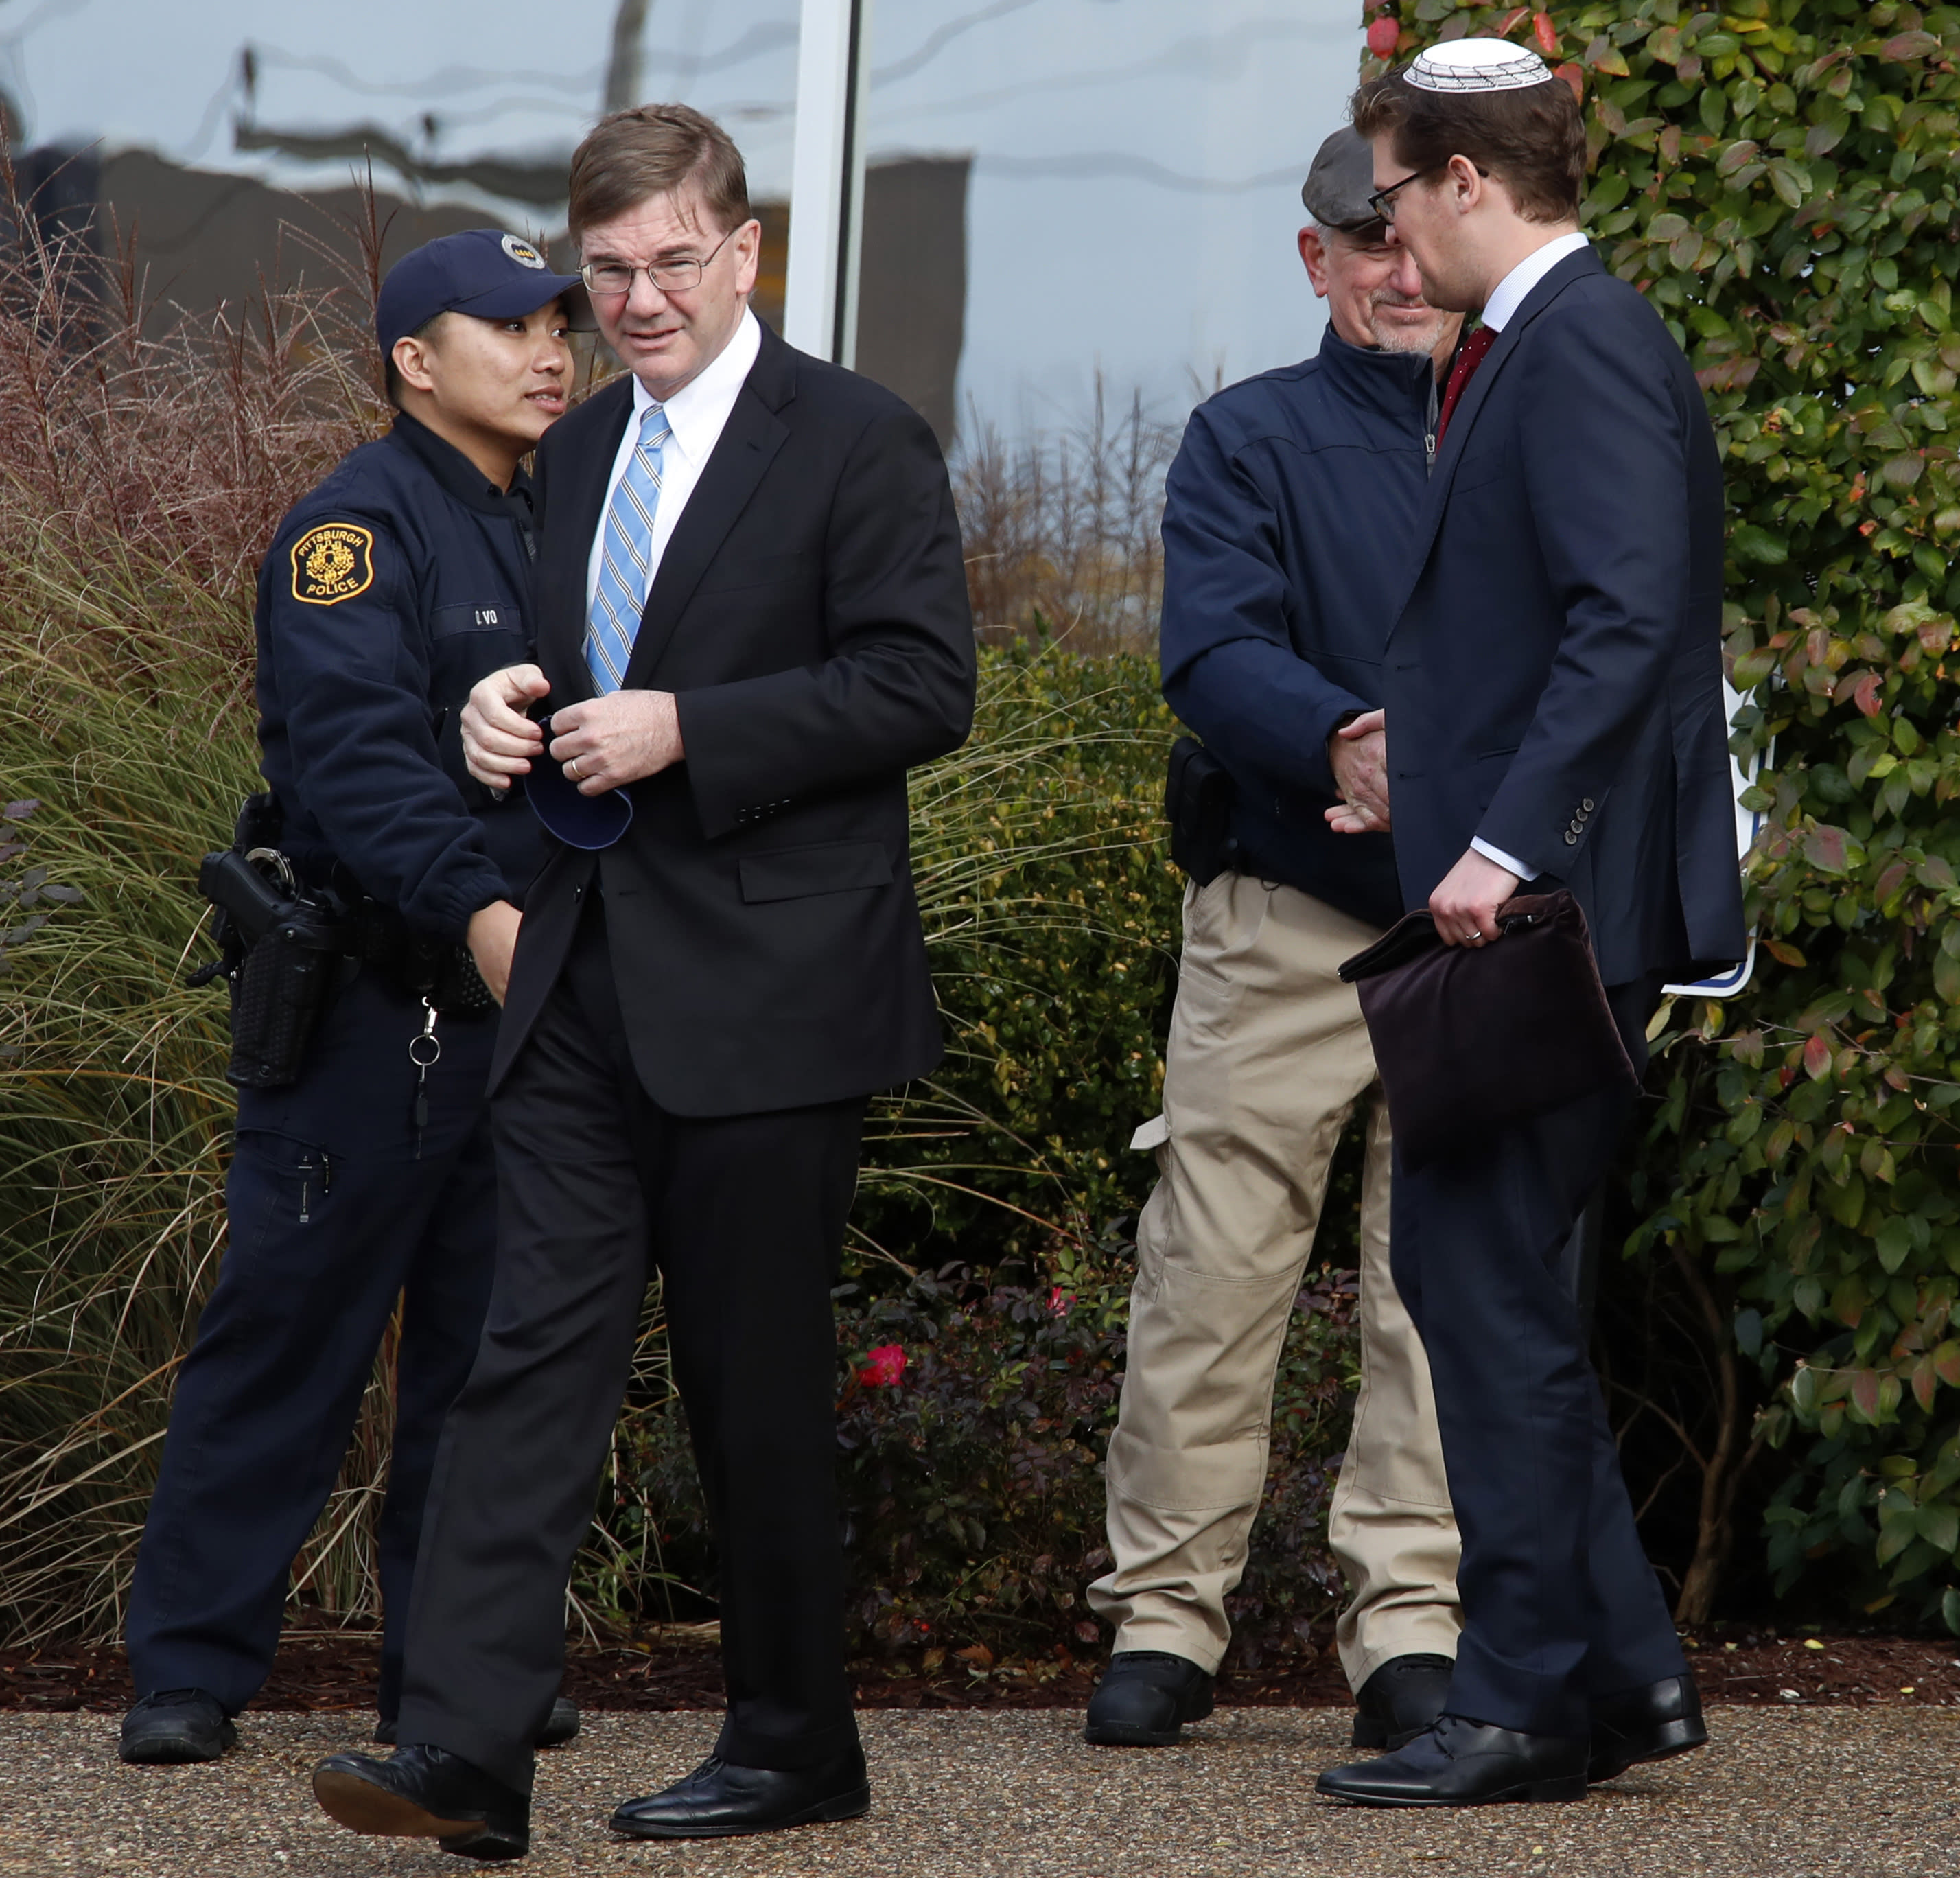 Republican Rep. Keith Rothfus, second from left, leaves the Beth Shalom synagogue after a Shabbat morning service, Saturday, Nov. 3, 2018 in Pittsburgh. (AP Photo/Gene J. Puskar)